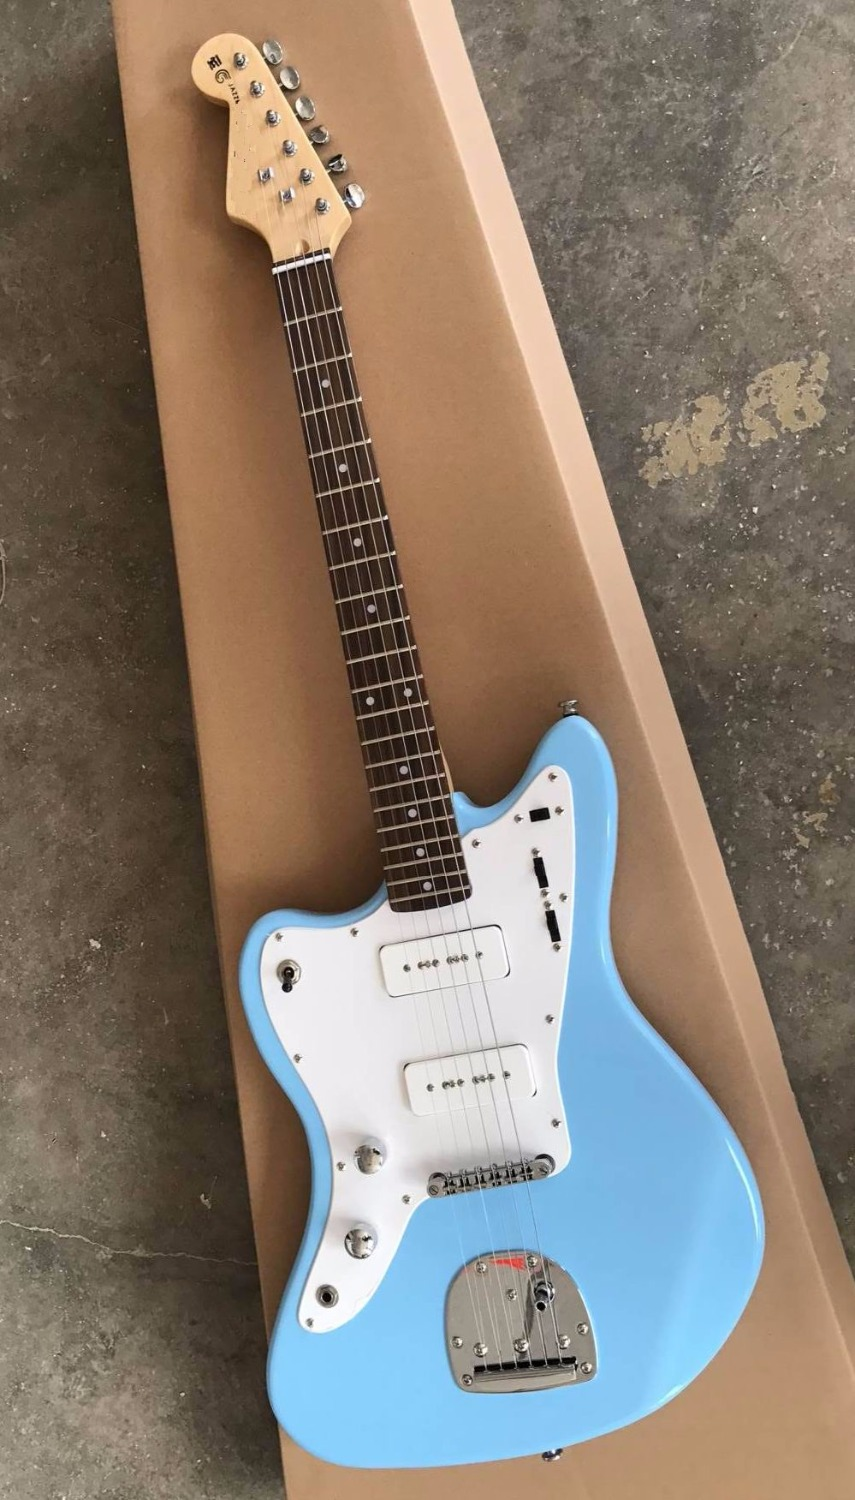 New Arrival Left Handed Upscale electric guitar In Light Blue 170429 new arrival musical instrument vintage sunburst classic es electric guitars china left handed available